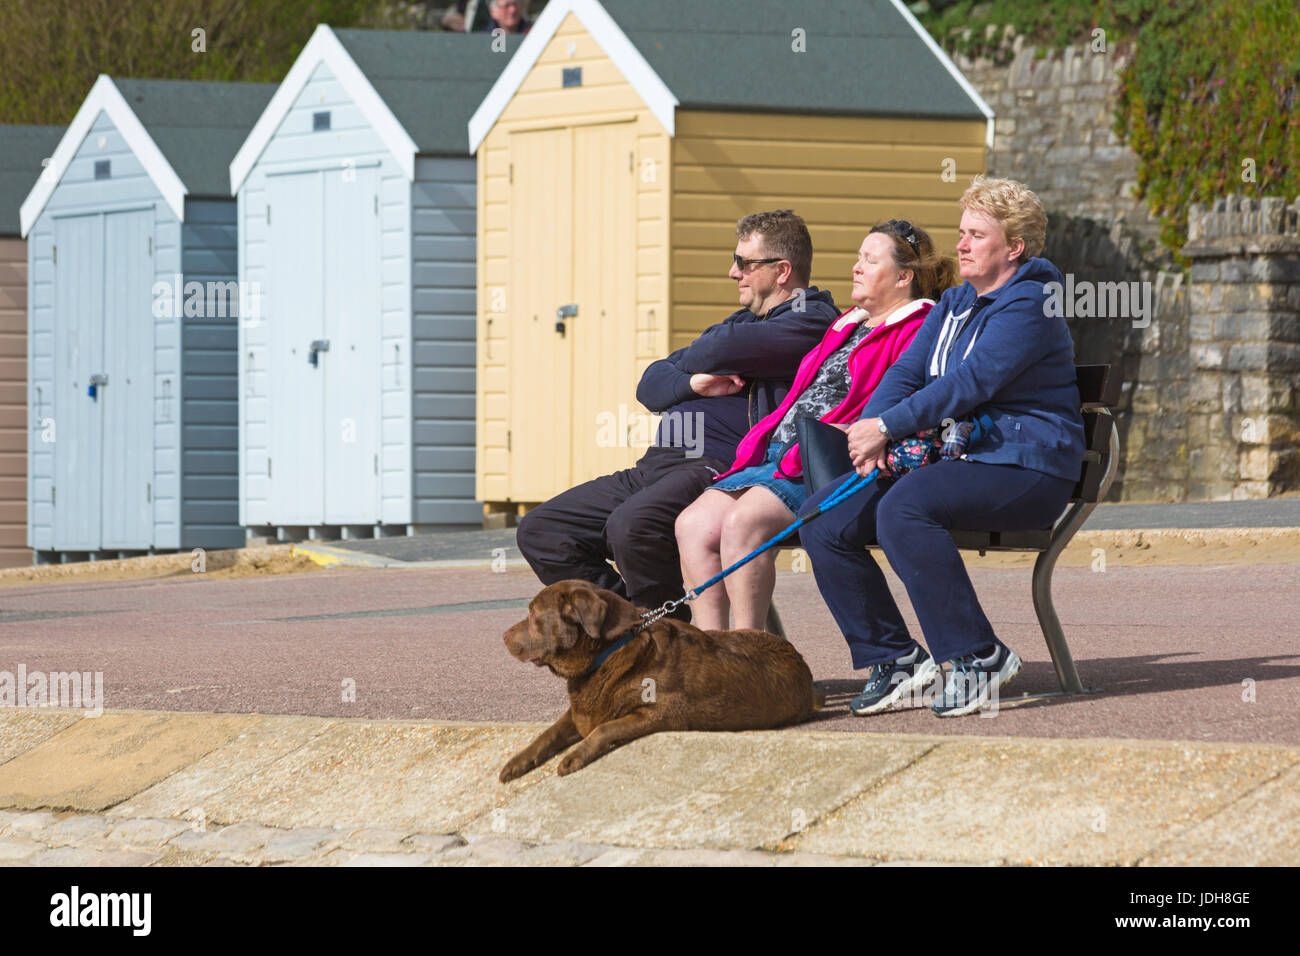 Three people sitting on bench enjoying the sunshine with dog at their feet at Bournemouth, Dorset in April - Stock Image